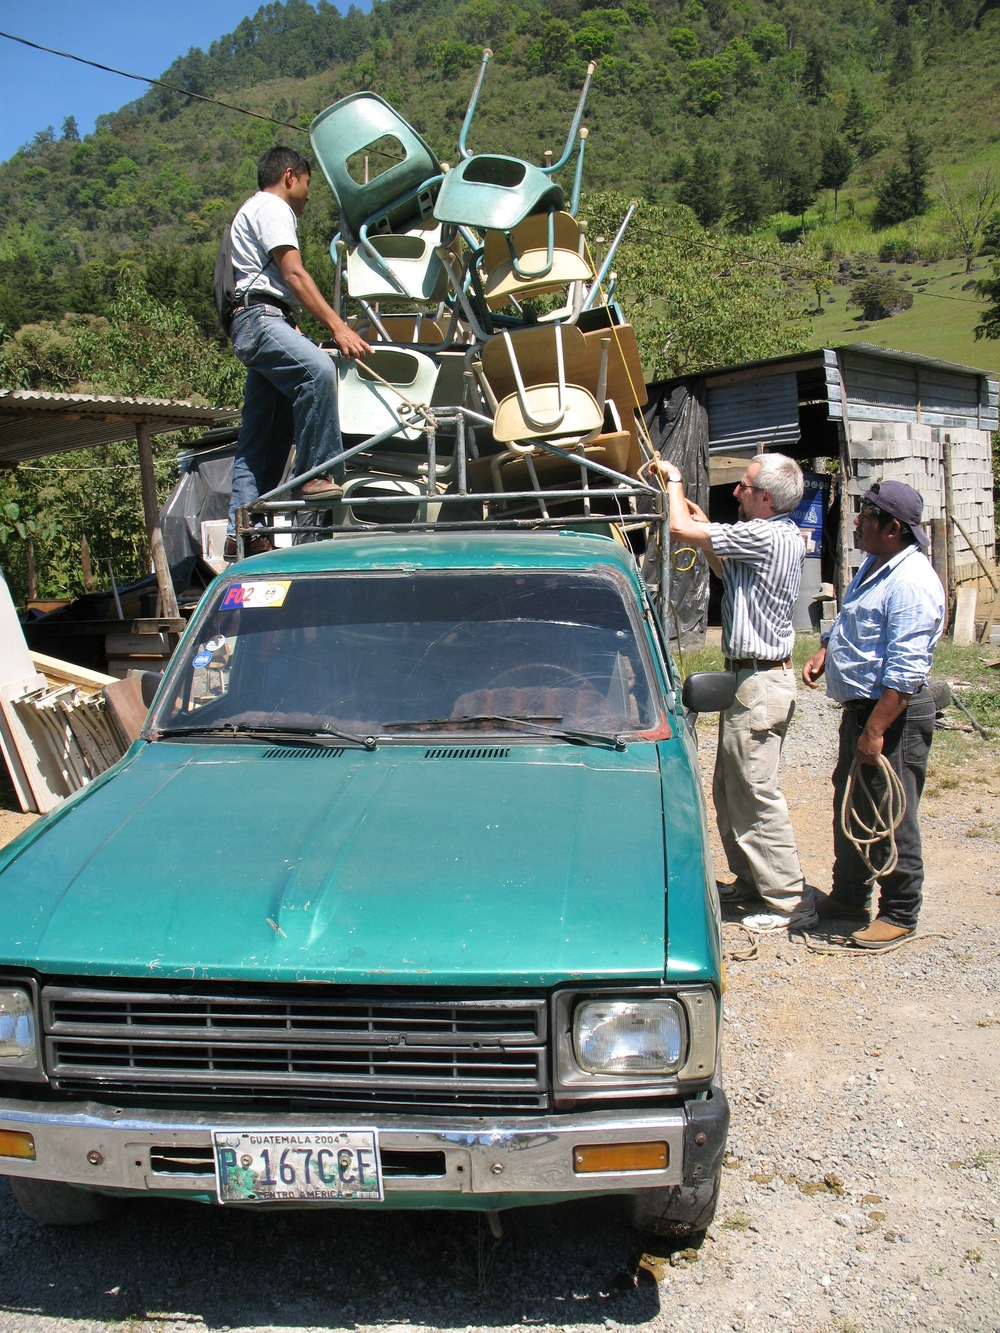 ... and loading Guatemalan style!